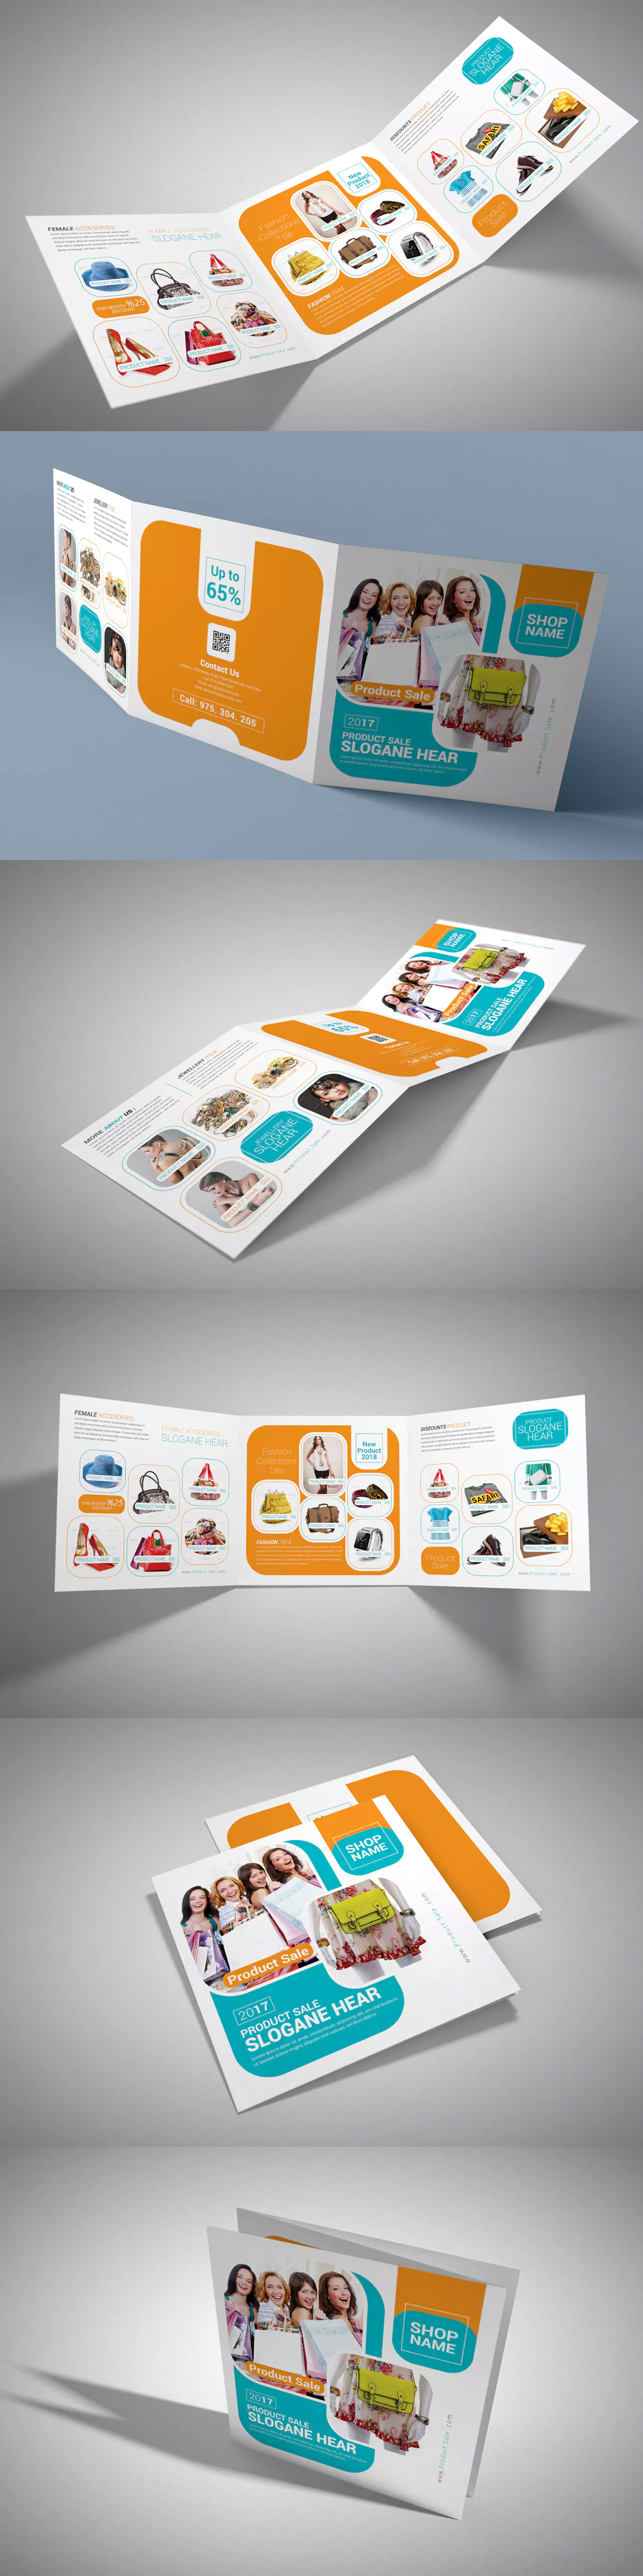 Product Sale Square Trifold Brochure Template Psd  Brochure